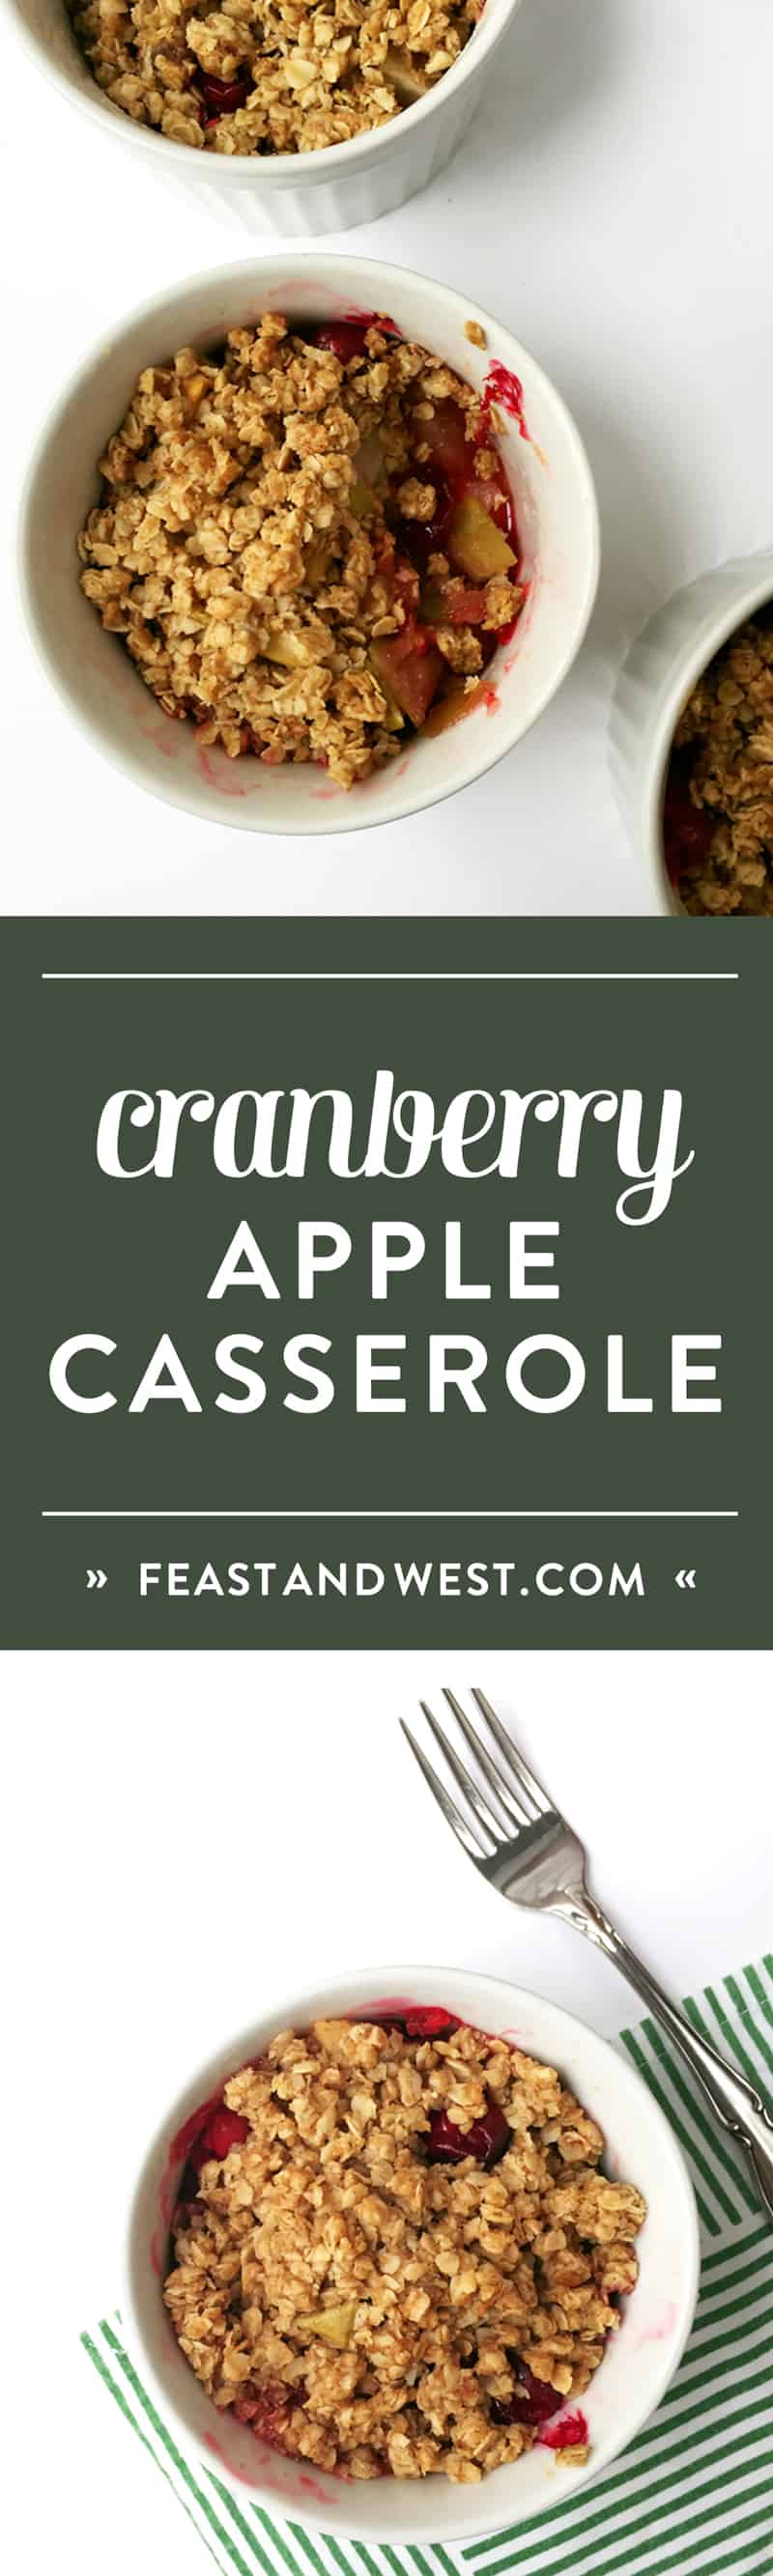 Mini Cranberry Apple Casseroles are a sweet and tart side for your Thanksgiving dinner or Christmas dinner. It's like baked apples and cranberry sauce all in one. (via feastandwest.com)